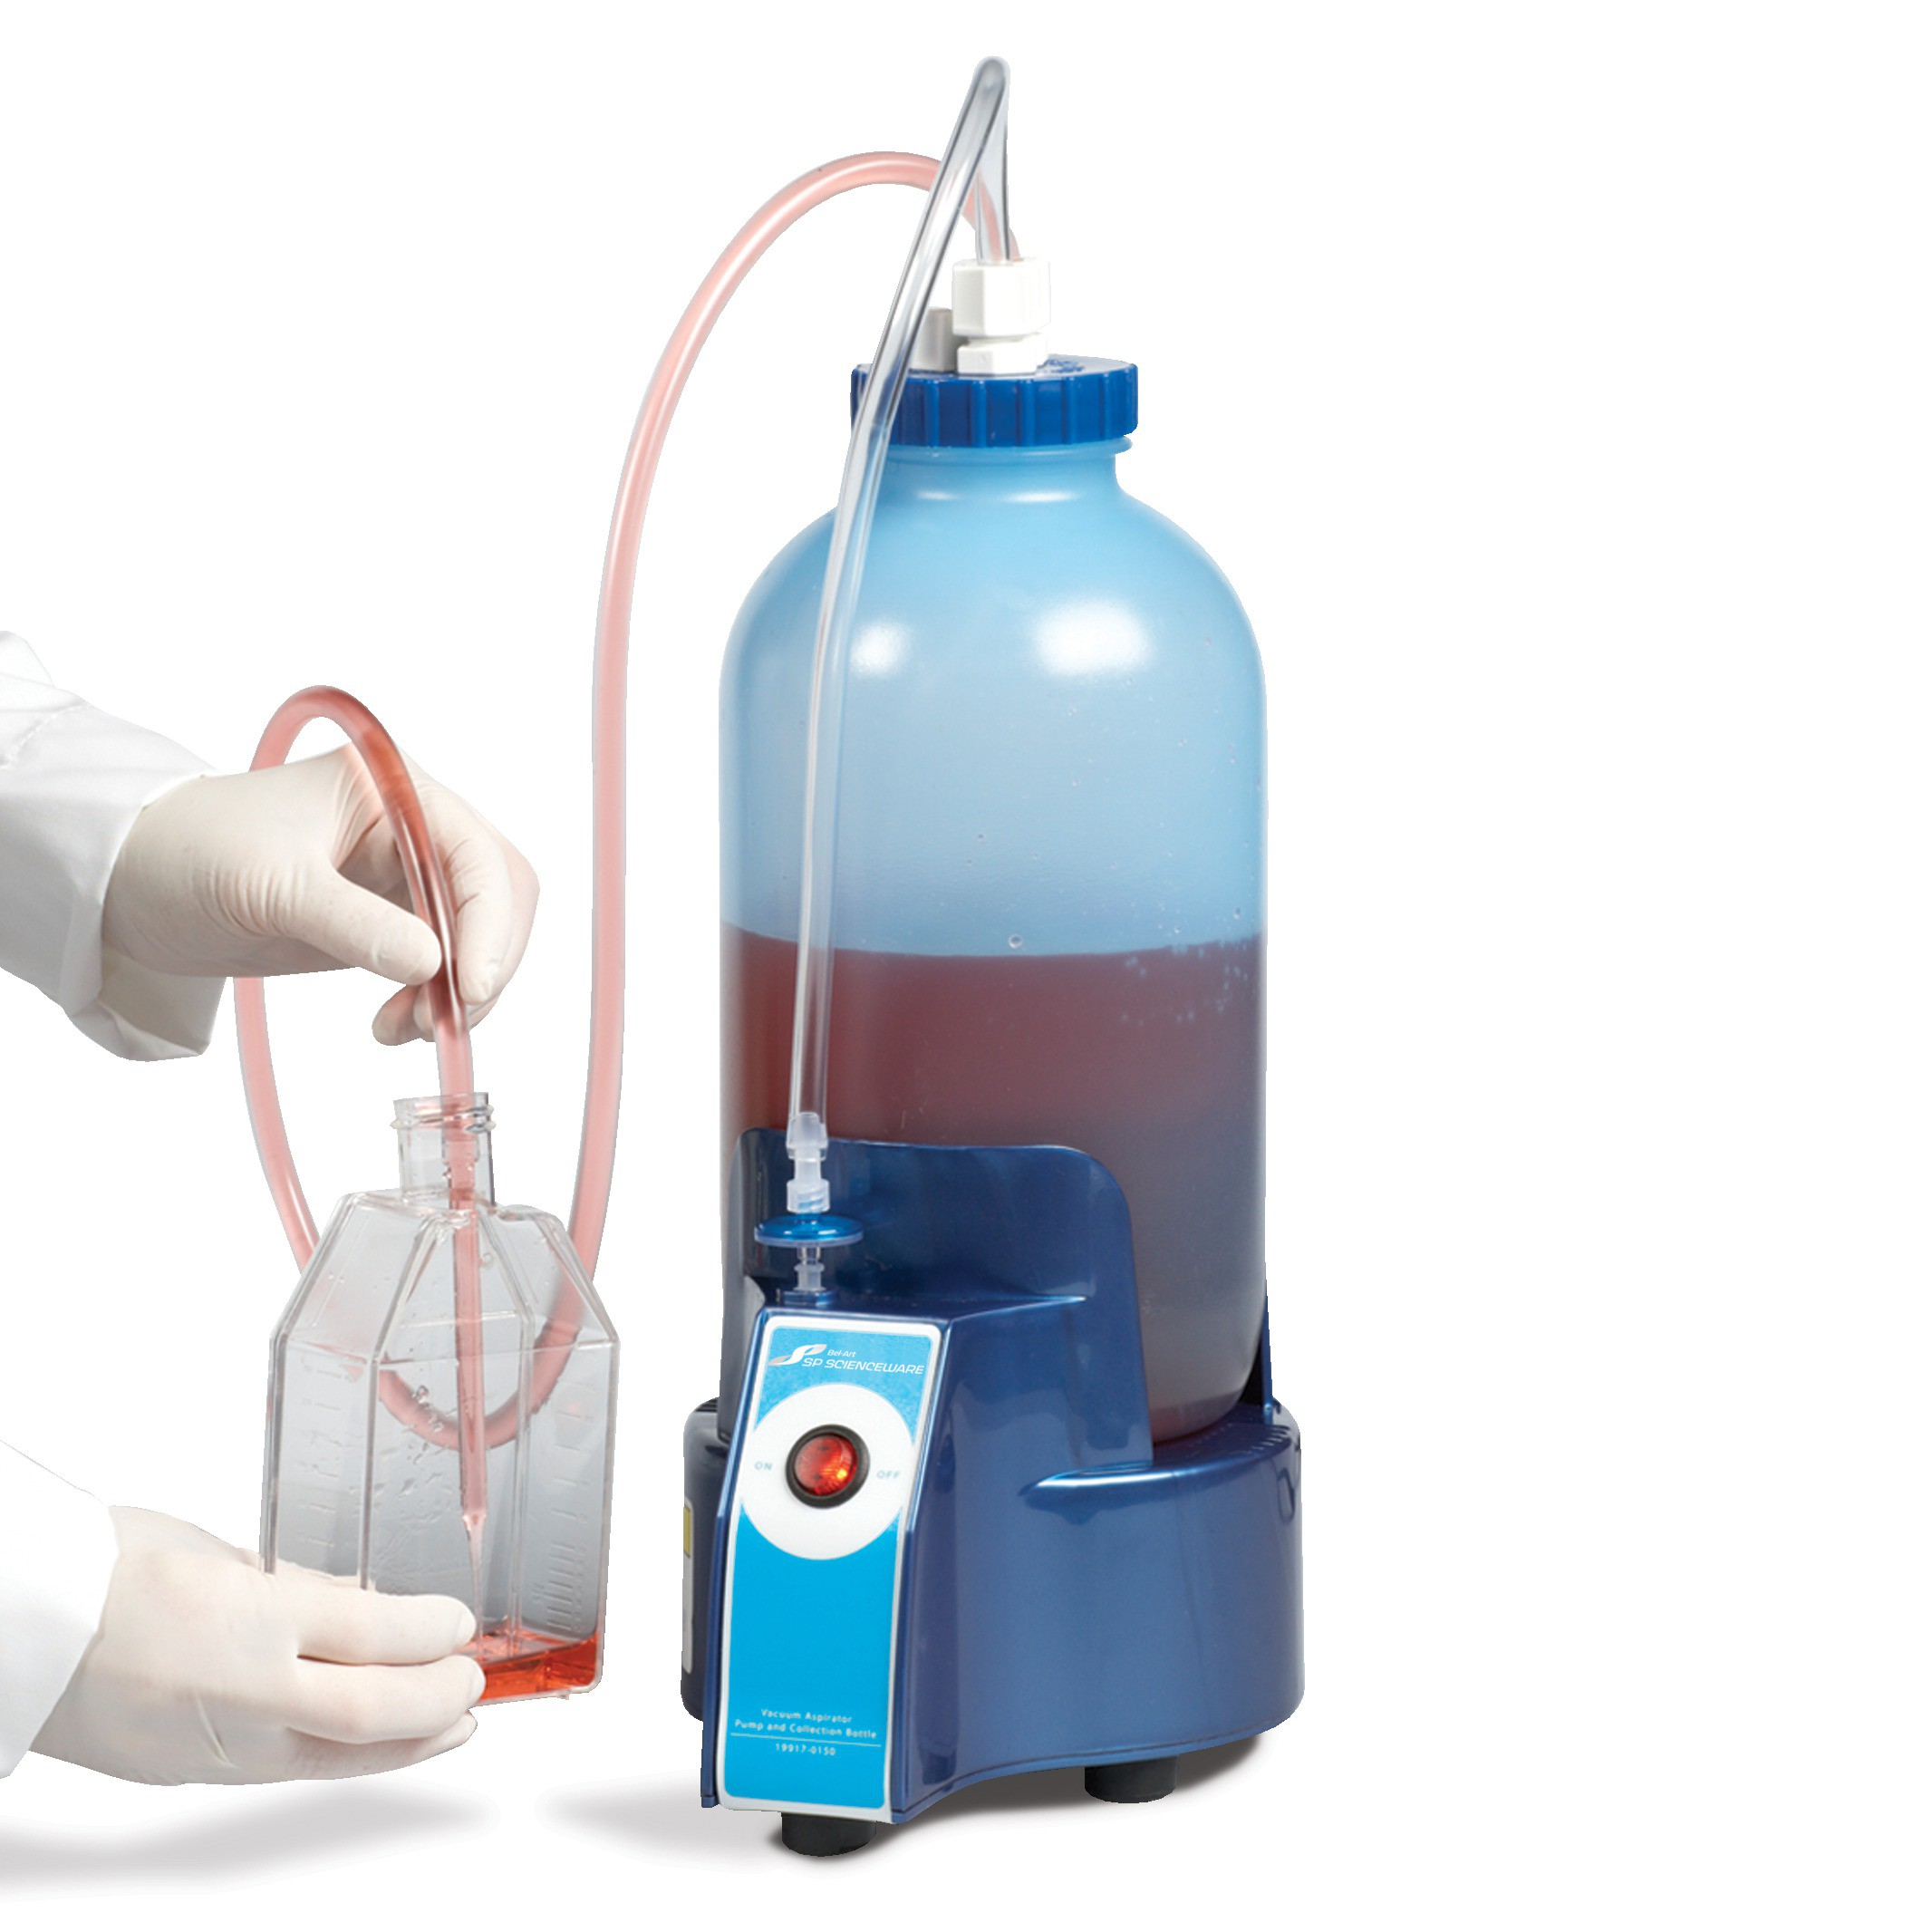 Bel Art Vacuum Aspirator Collection System; 1.0 Gallon Bottle With Pump